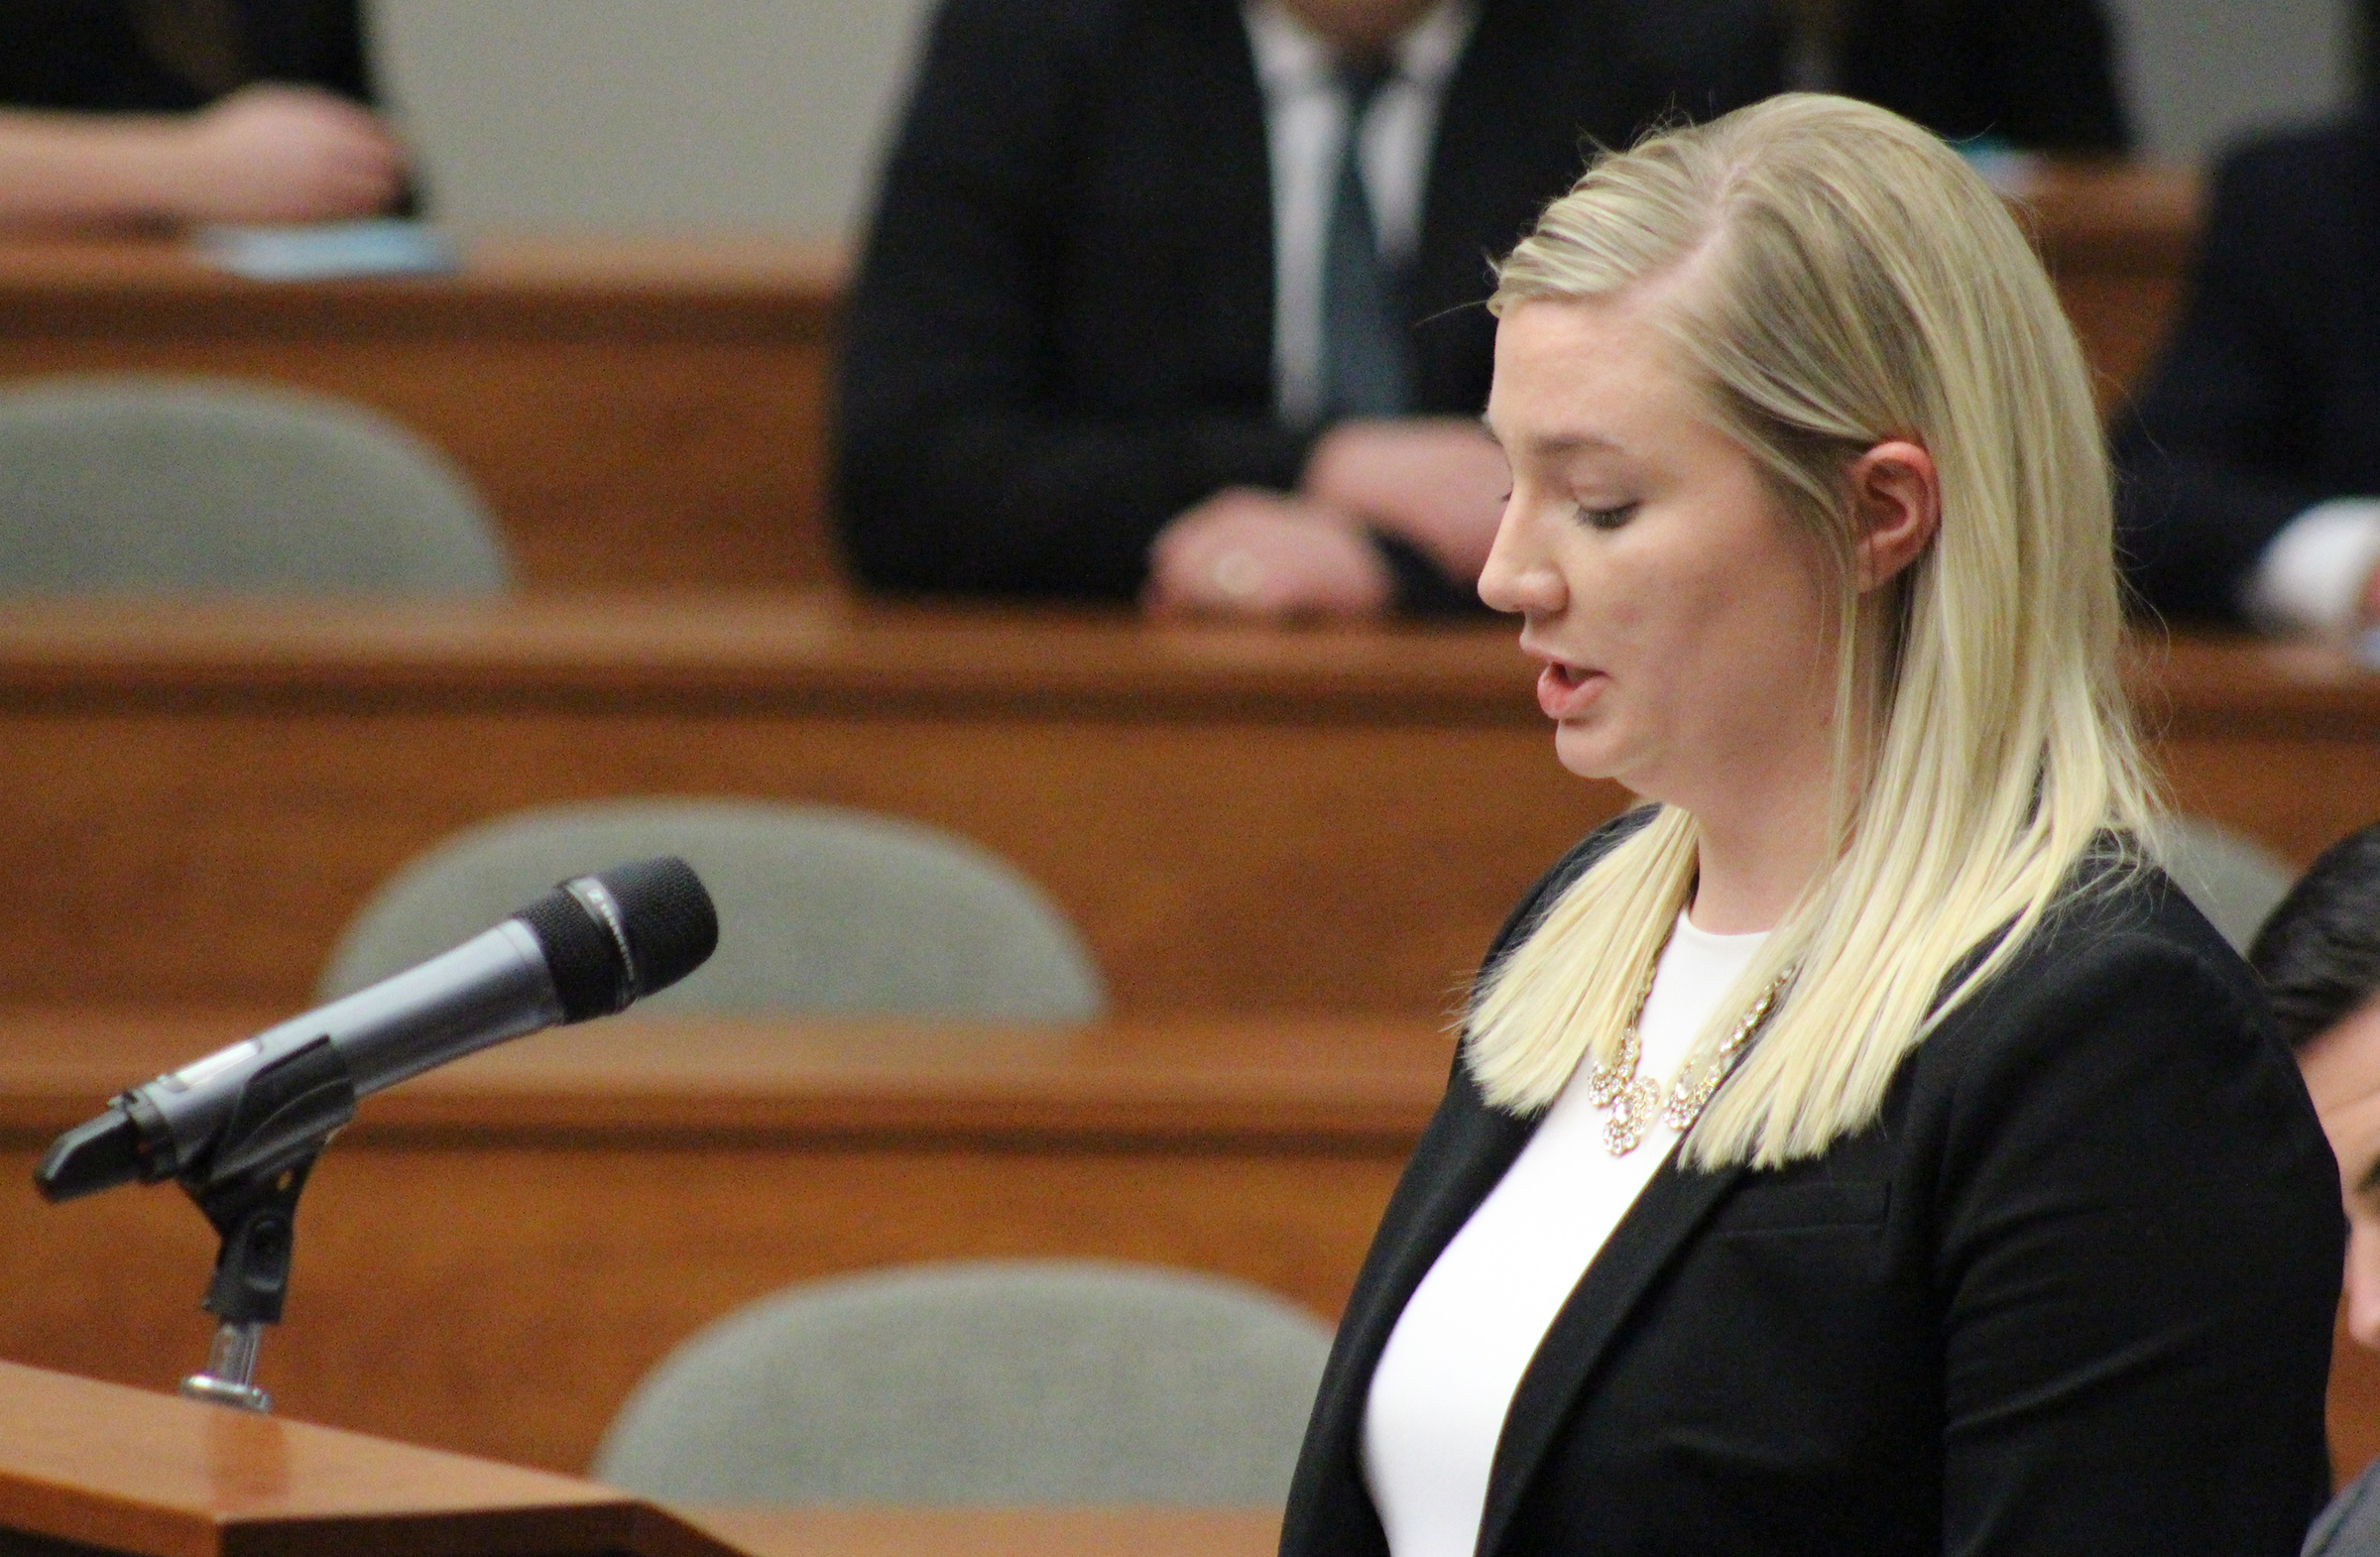 Creighton University second year law student Kristen Lindgren presents the case for the petitioner at the final round of the annual moot court competition at the Creighton University School of Law on Monday, Nov. 4, 2019. (Photo by Scott Stewart)